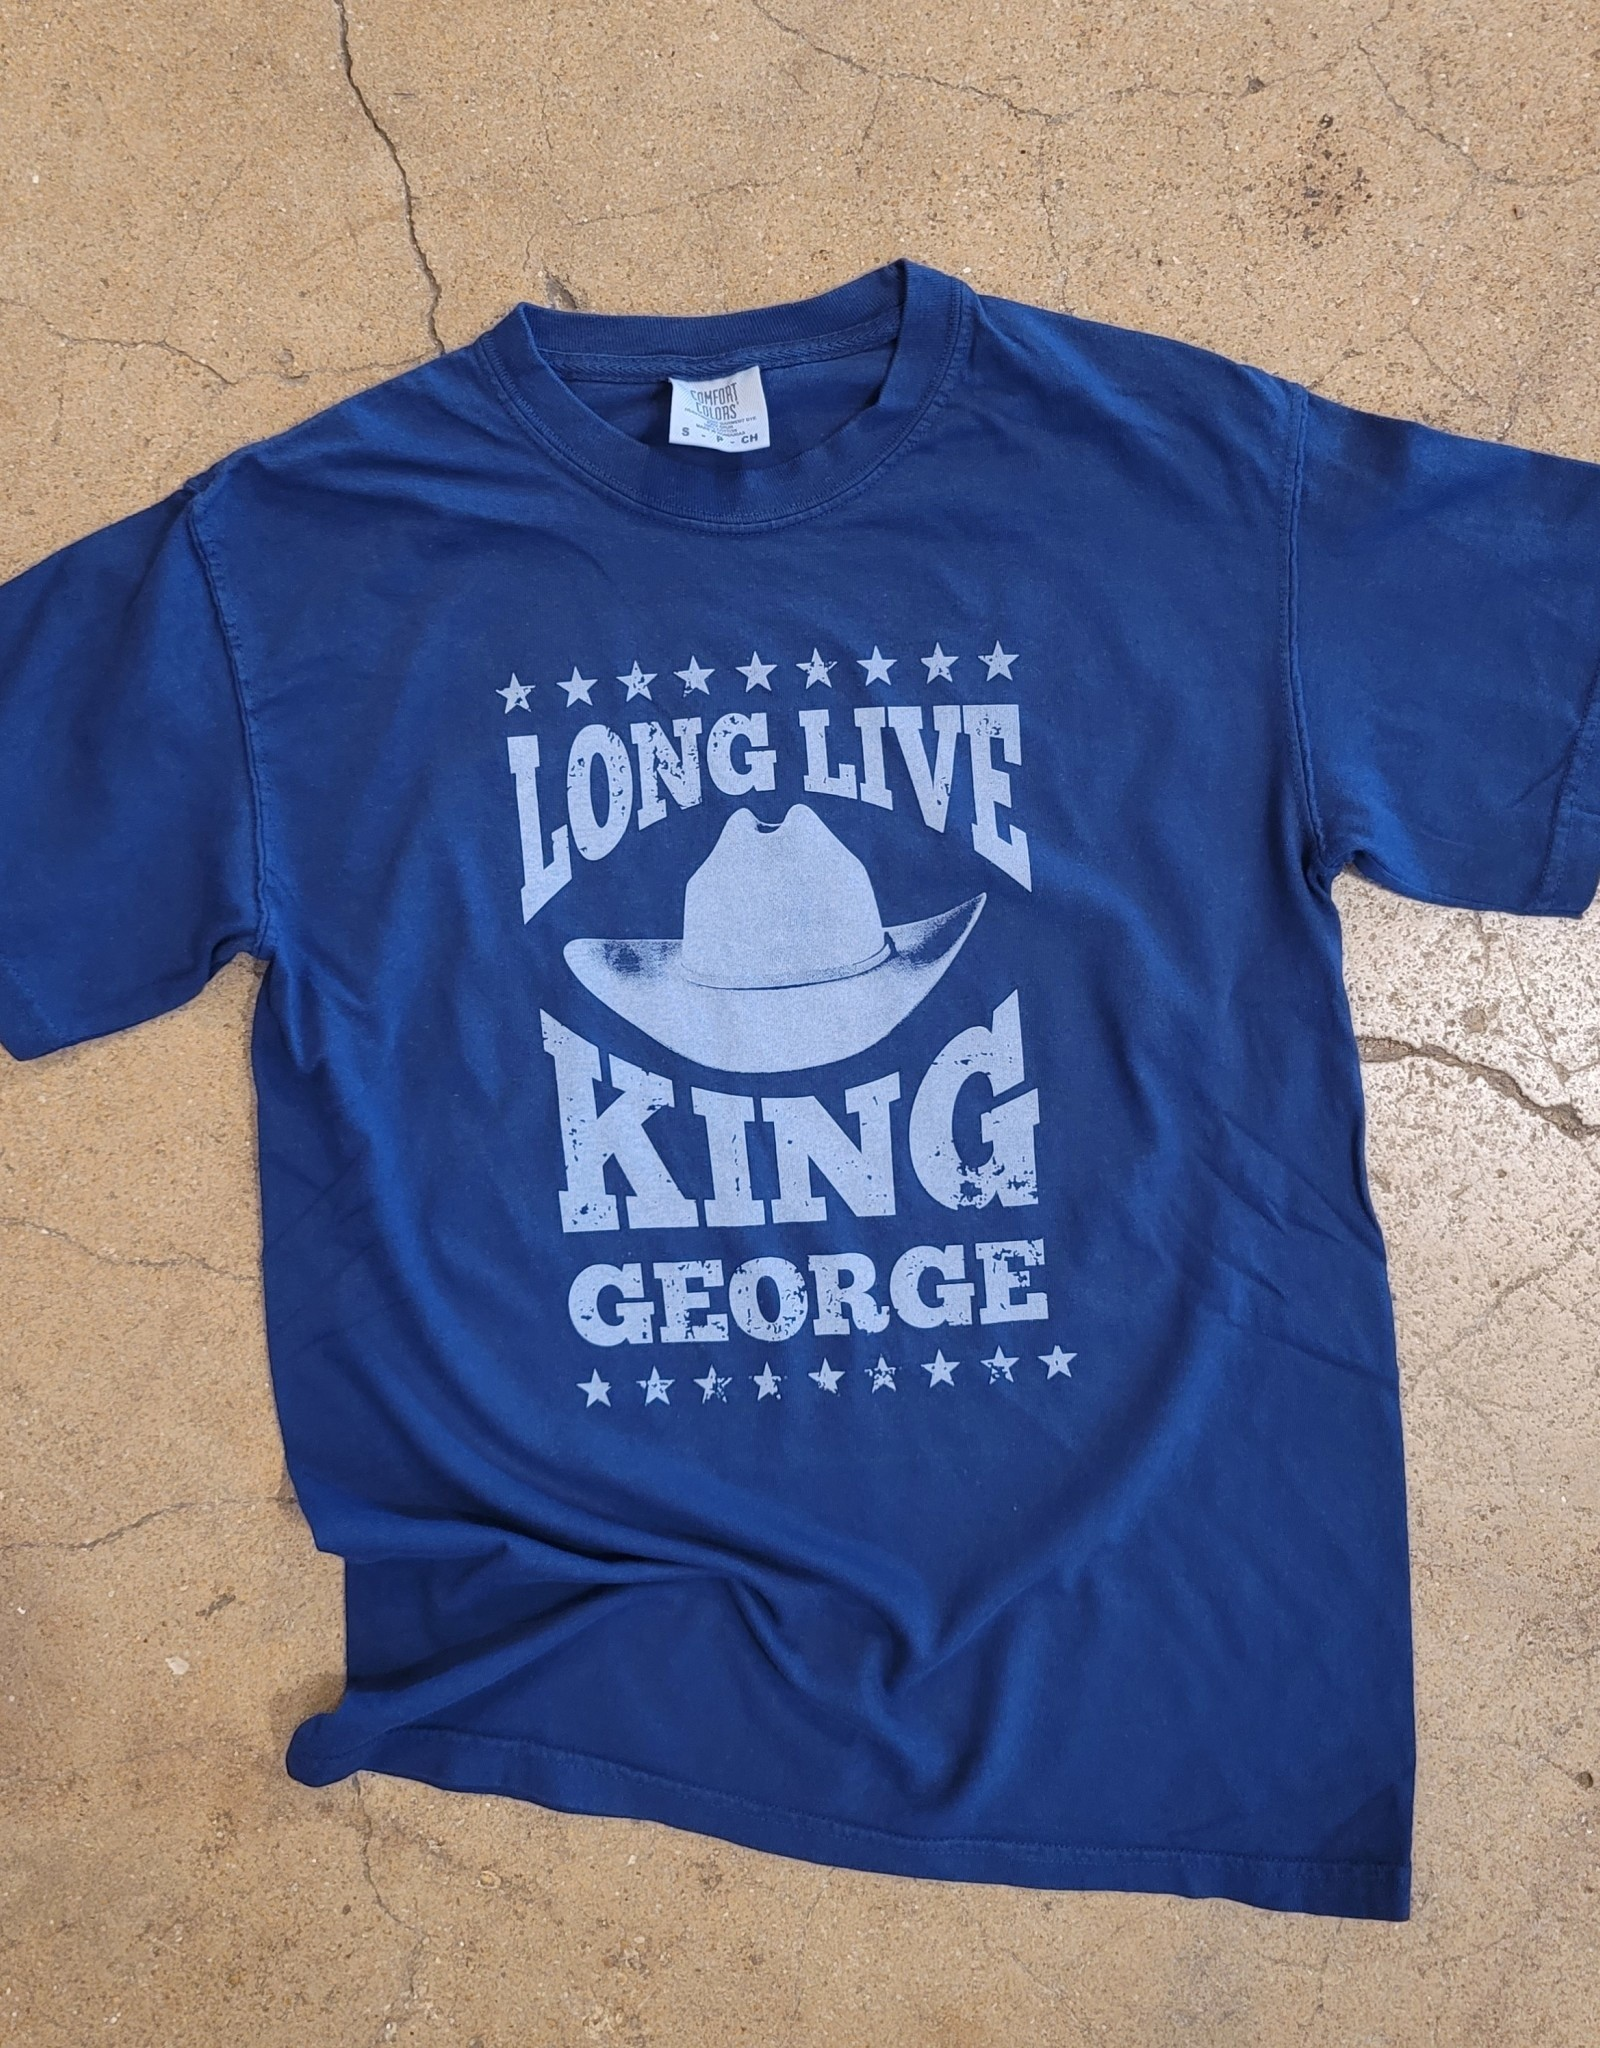 Long Live King George Tee by Ruby's Rubbish